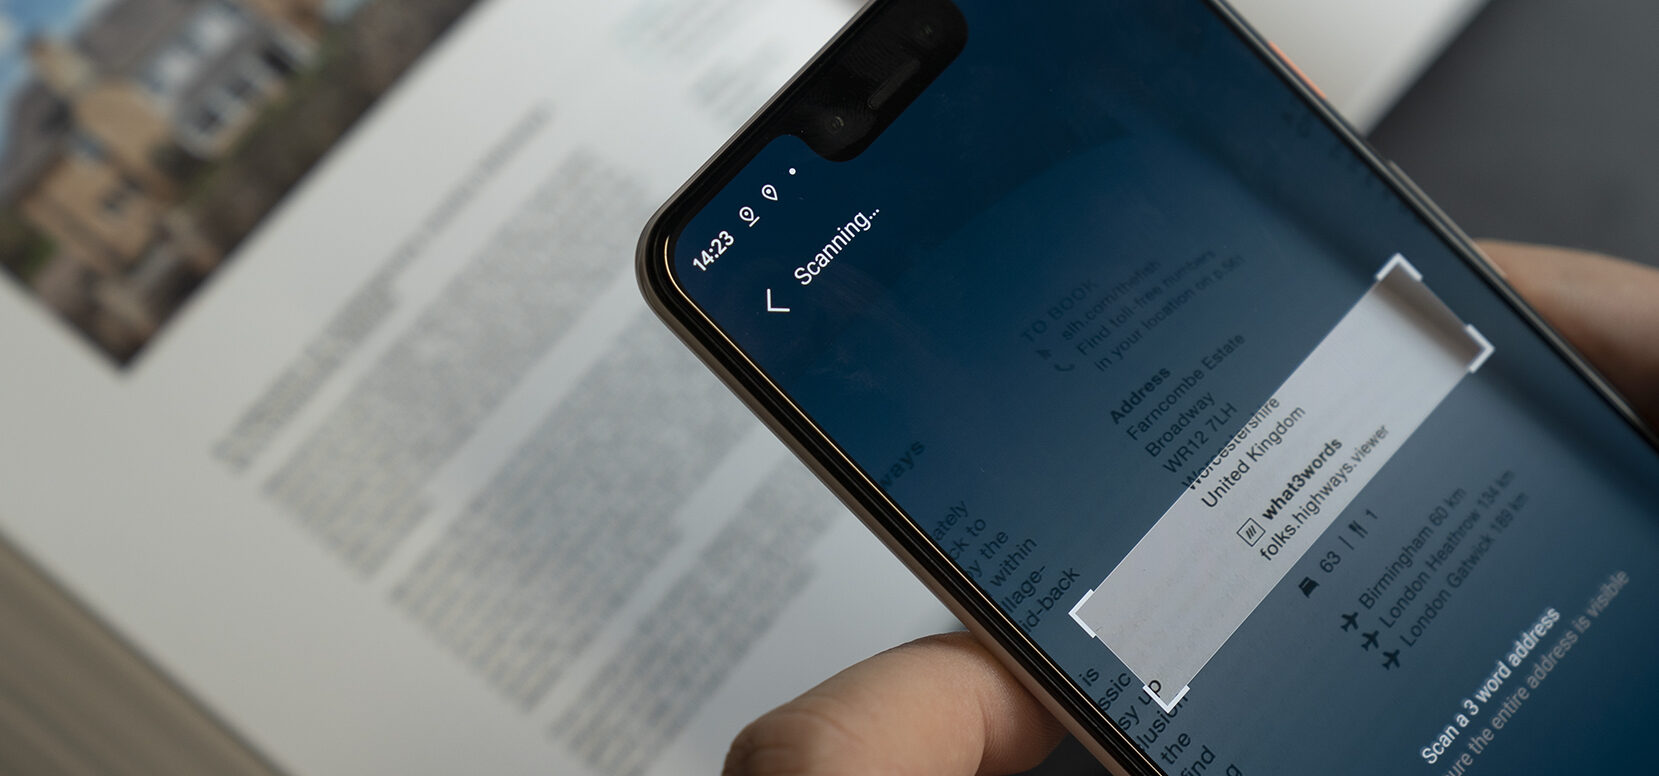 smartphone scanning a 3 word address